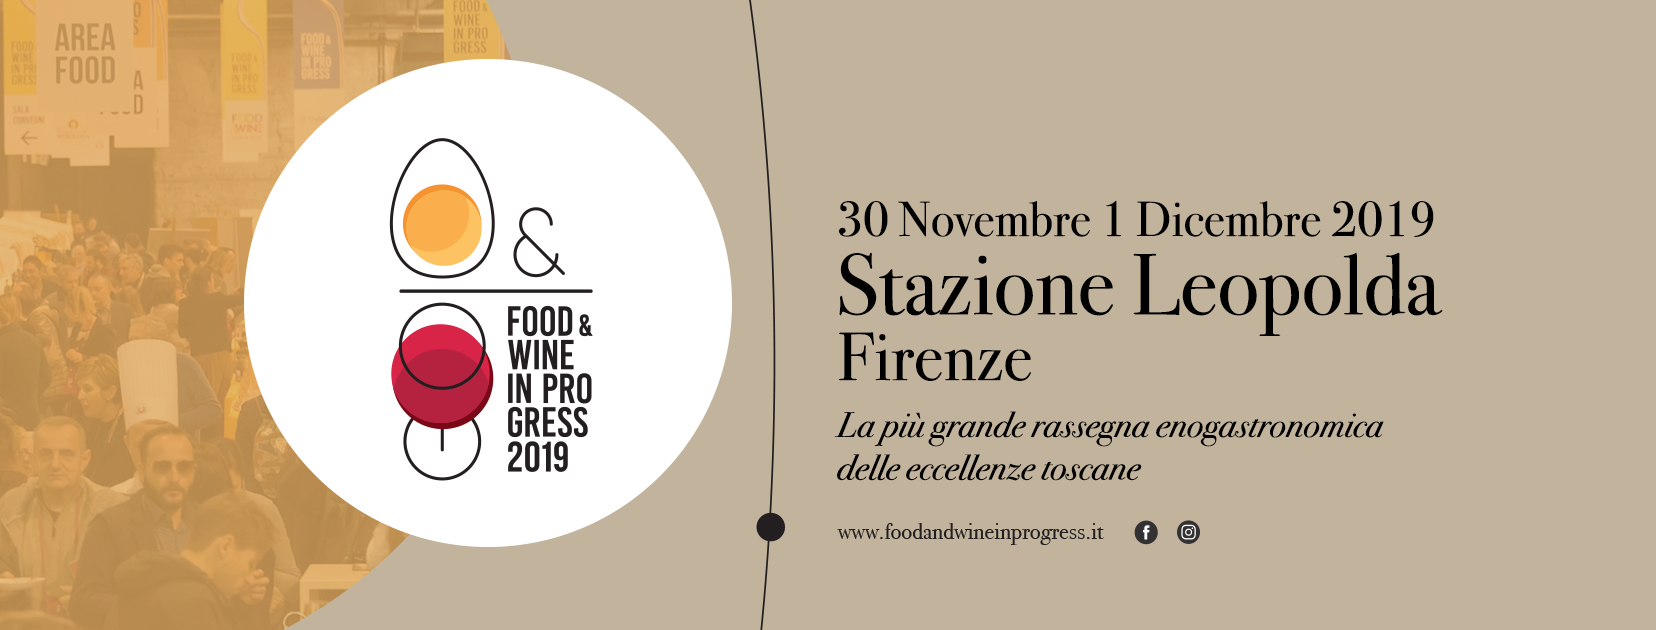 Food & Wine in progress alla Stazione Leopolda di Firenze, 30 novembre – 1 dicembre 2019